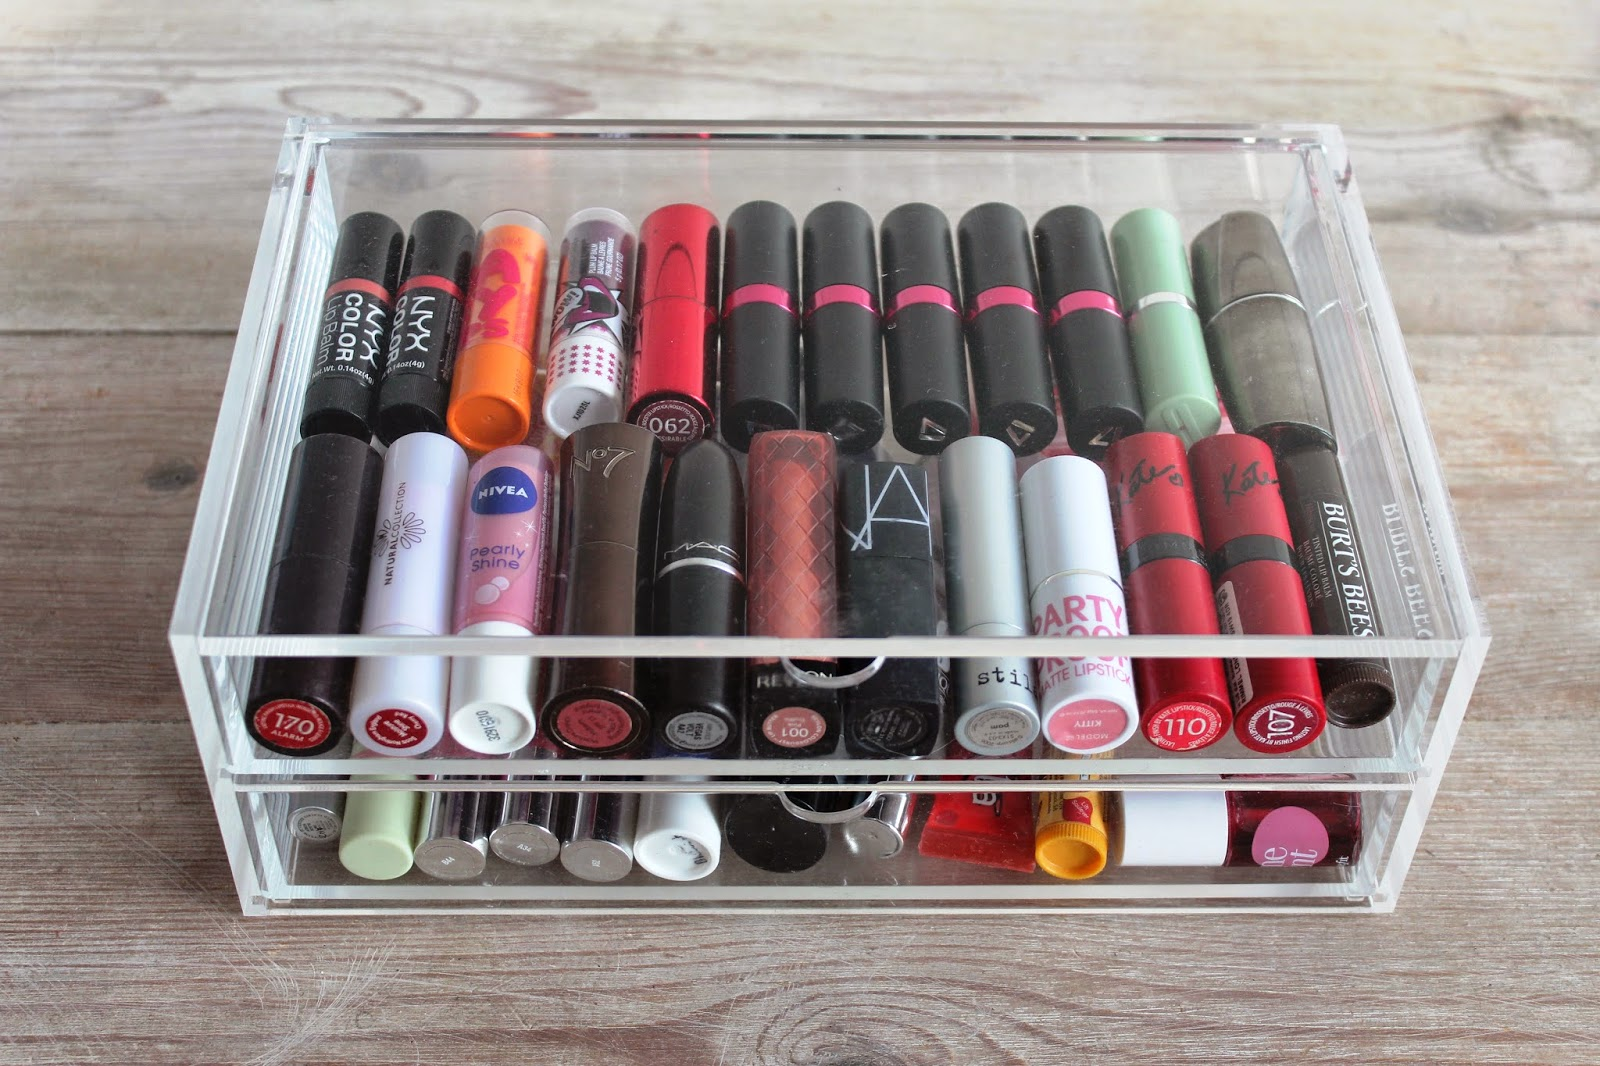 muji drawers swatches organisation lipsticks lips make up balm products rimmel maybelline the body shop stila mac revlon natural collection burts bees kate moss nars clinique thebalm benefit chubby stick coralista loccitane lush scrub hand cream seventeen vivo cosmetics